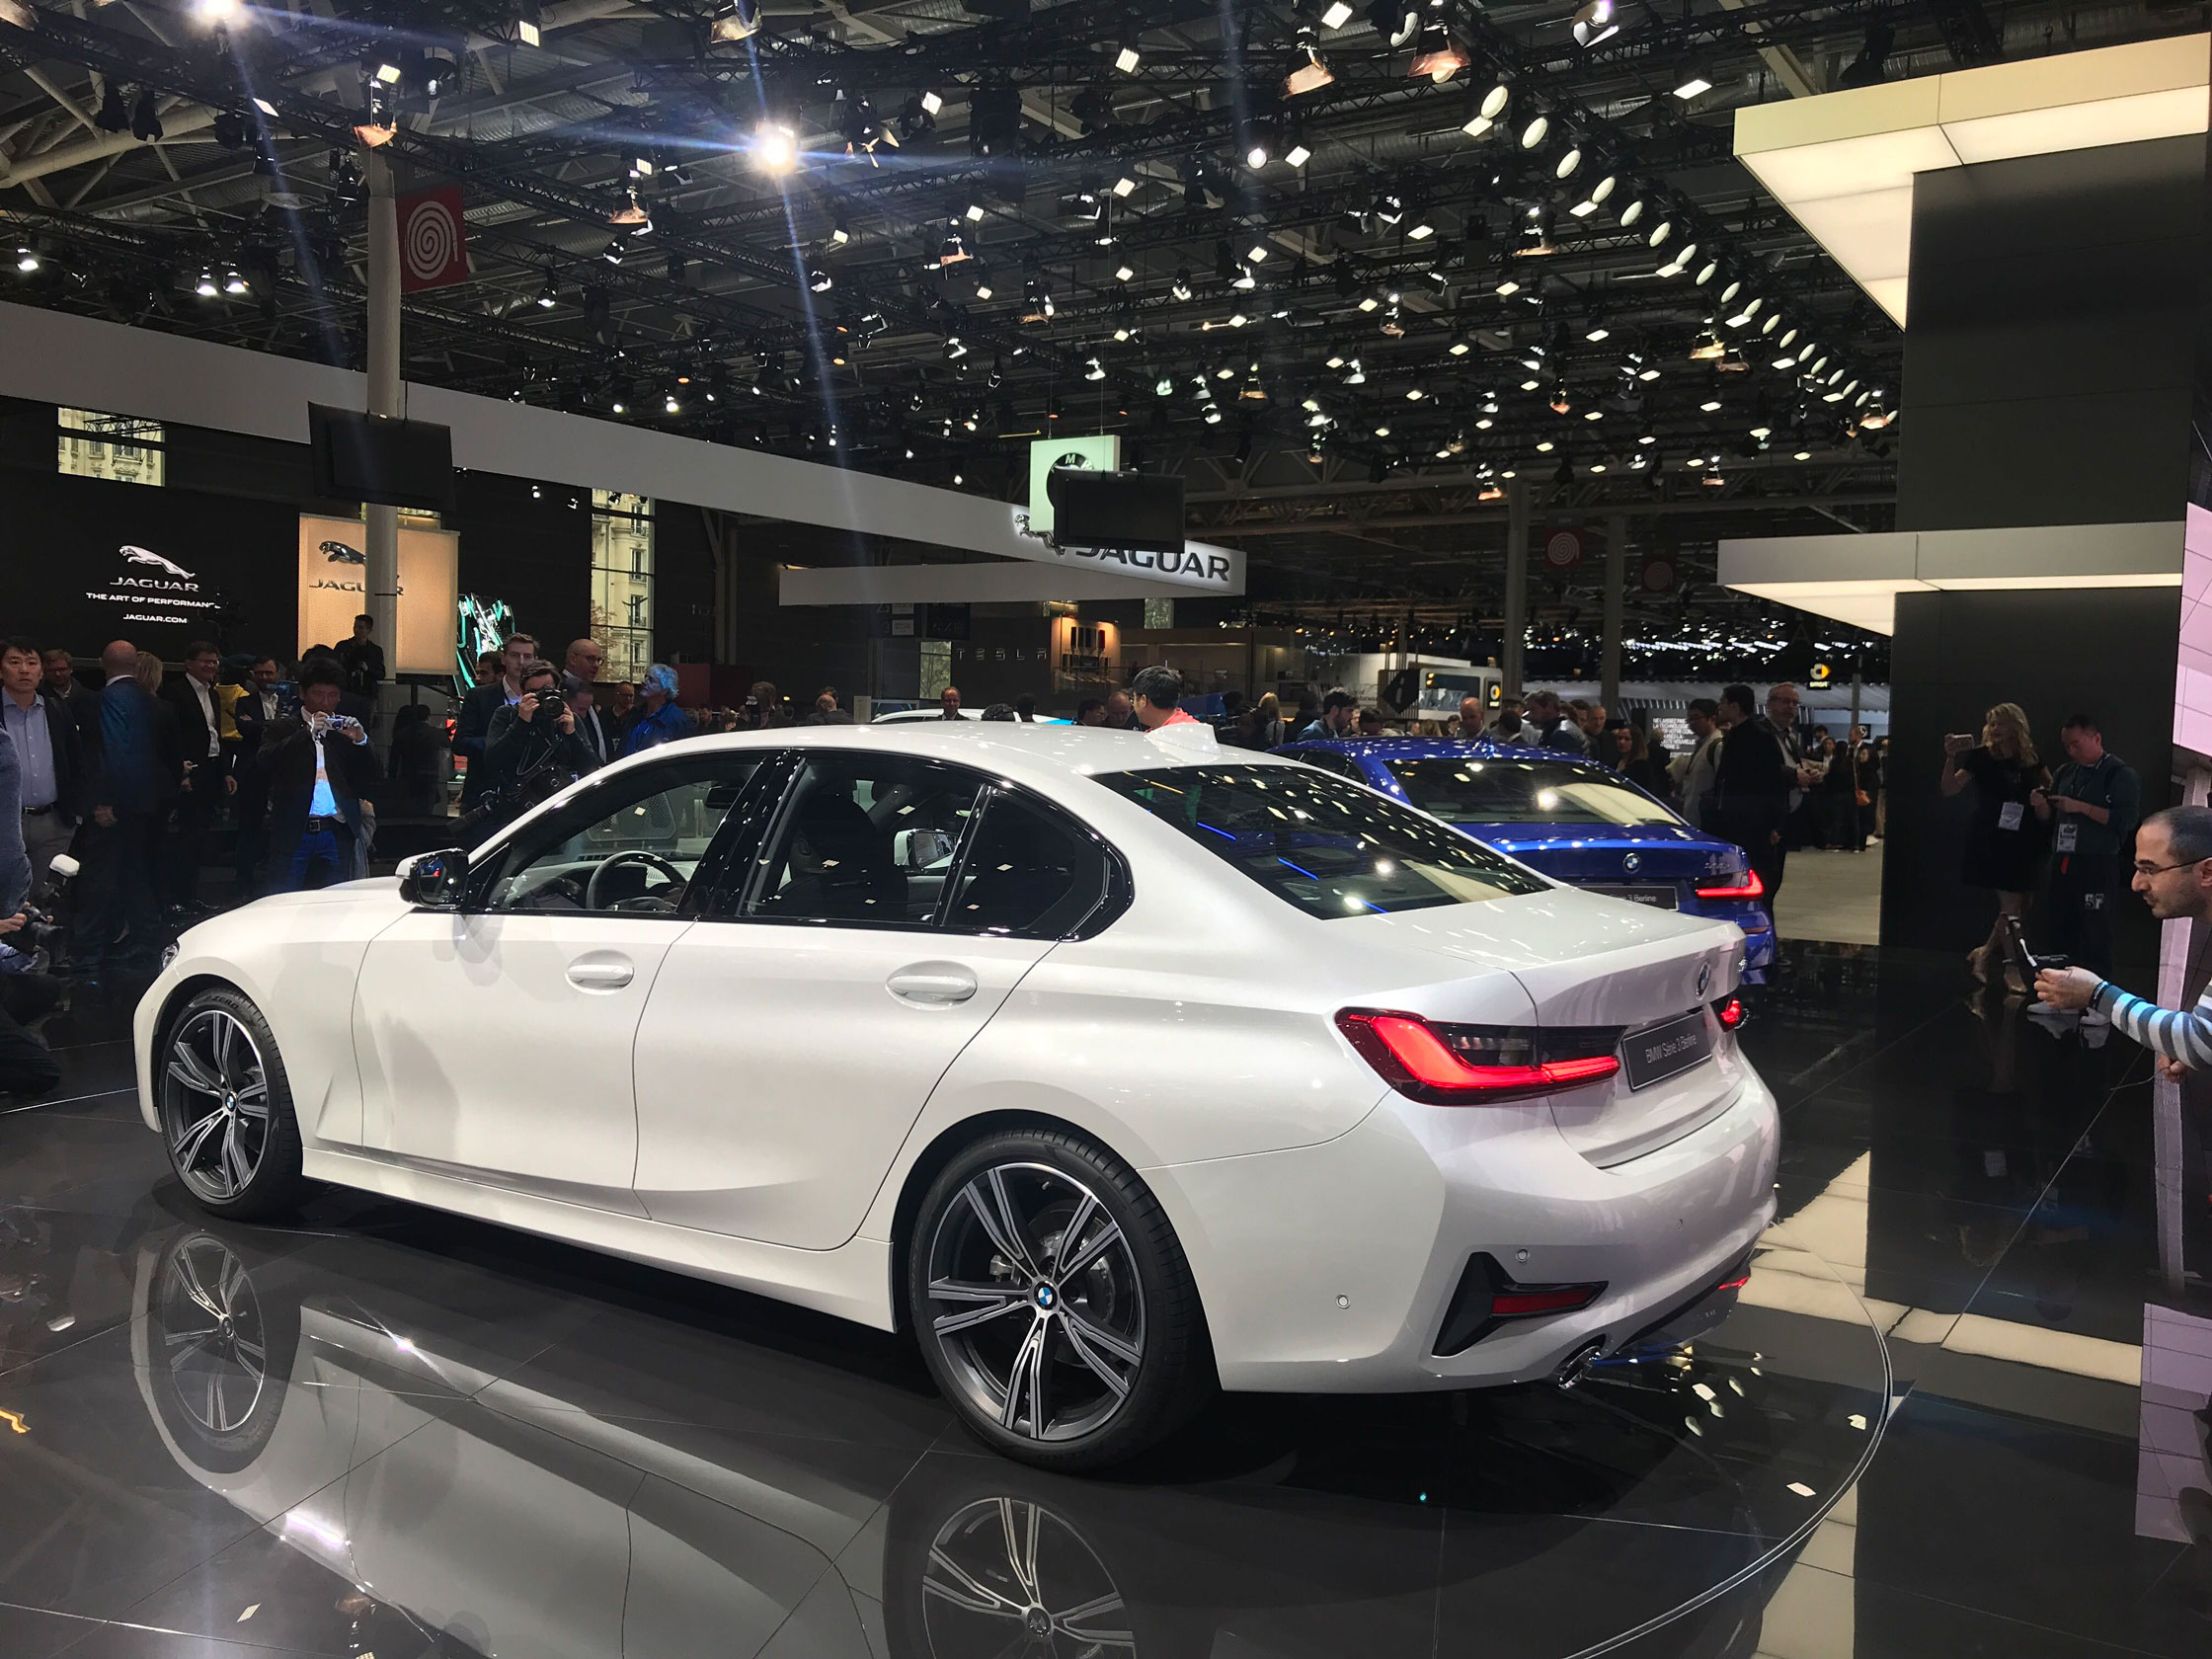 new 2019 bmw 3-series revealed - lighter and more dynamic